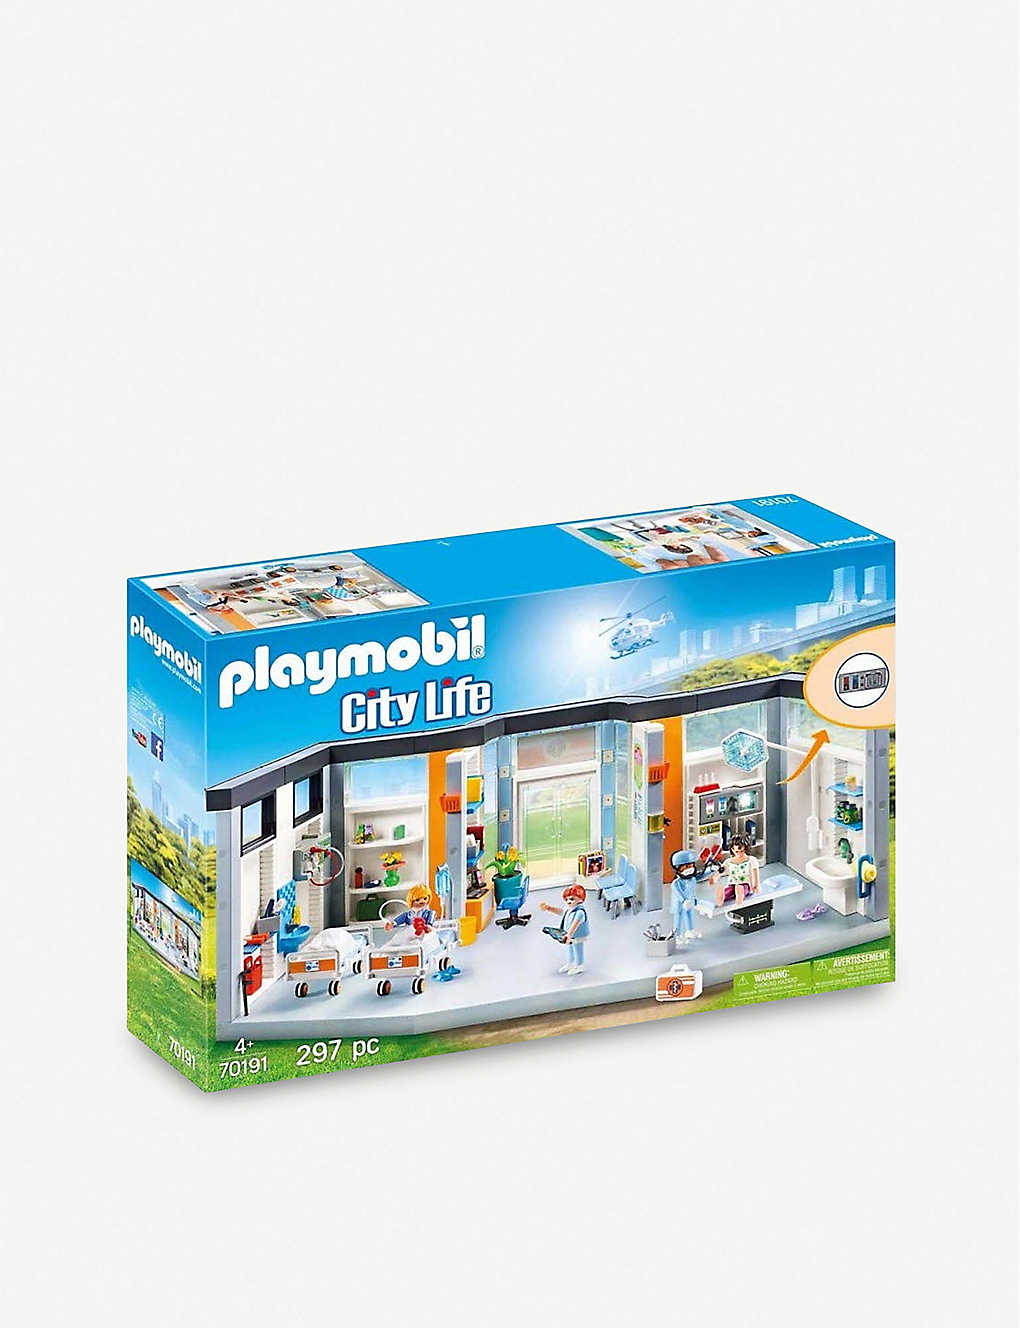 PLAYMOBIL: City Life Hospital wing playset